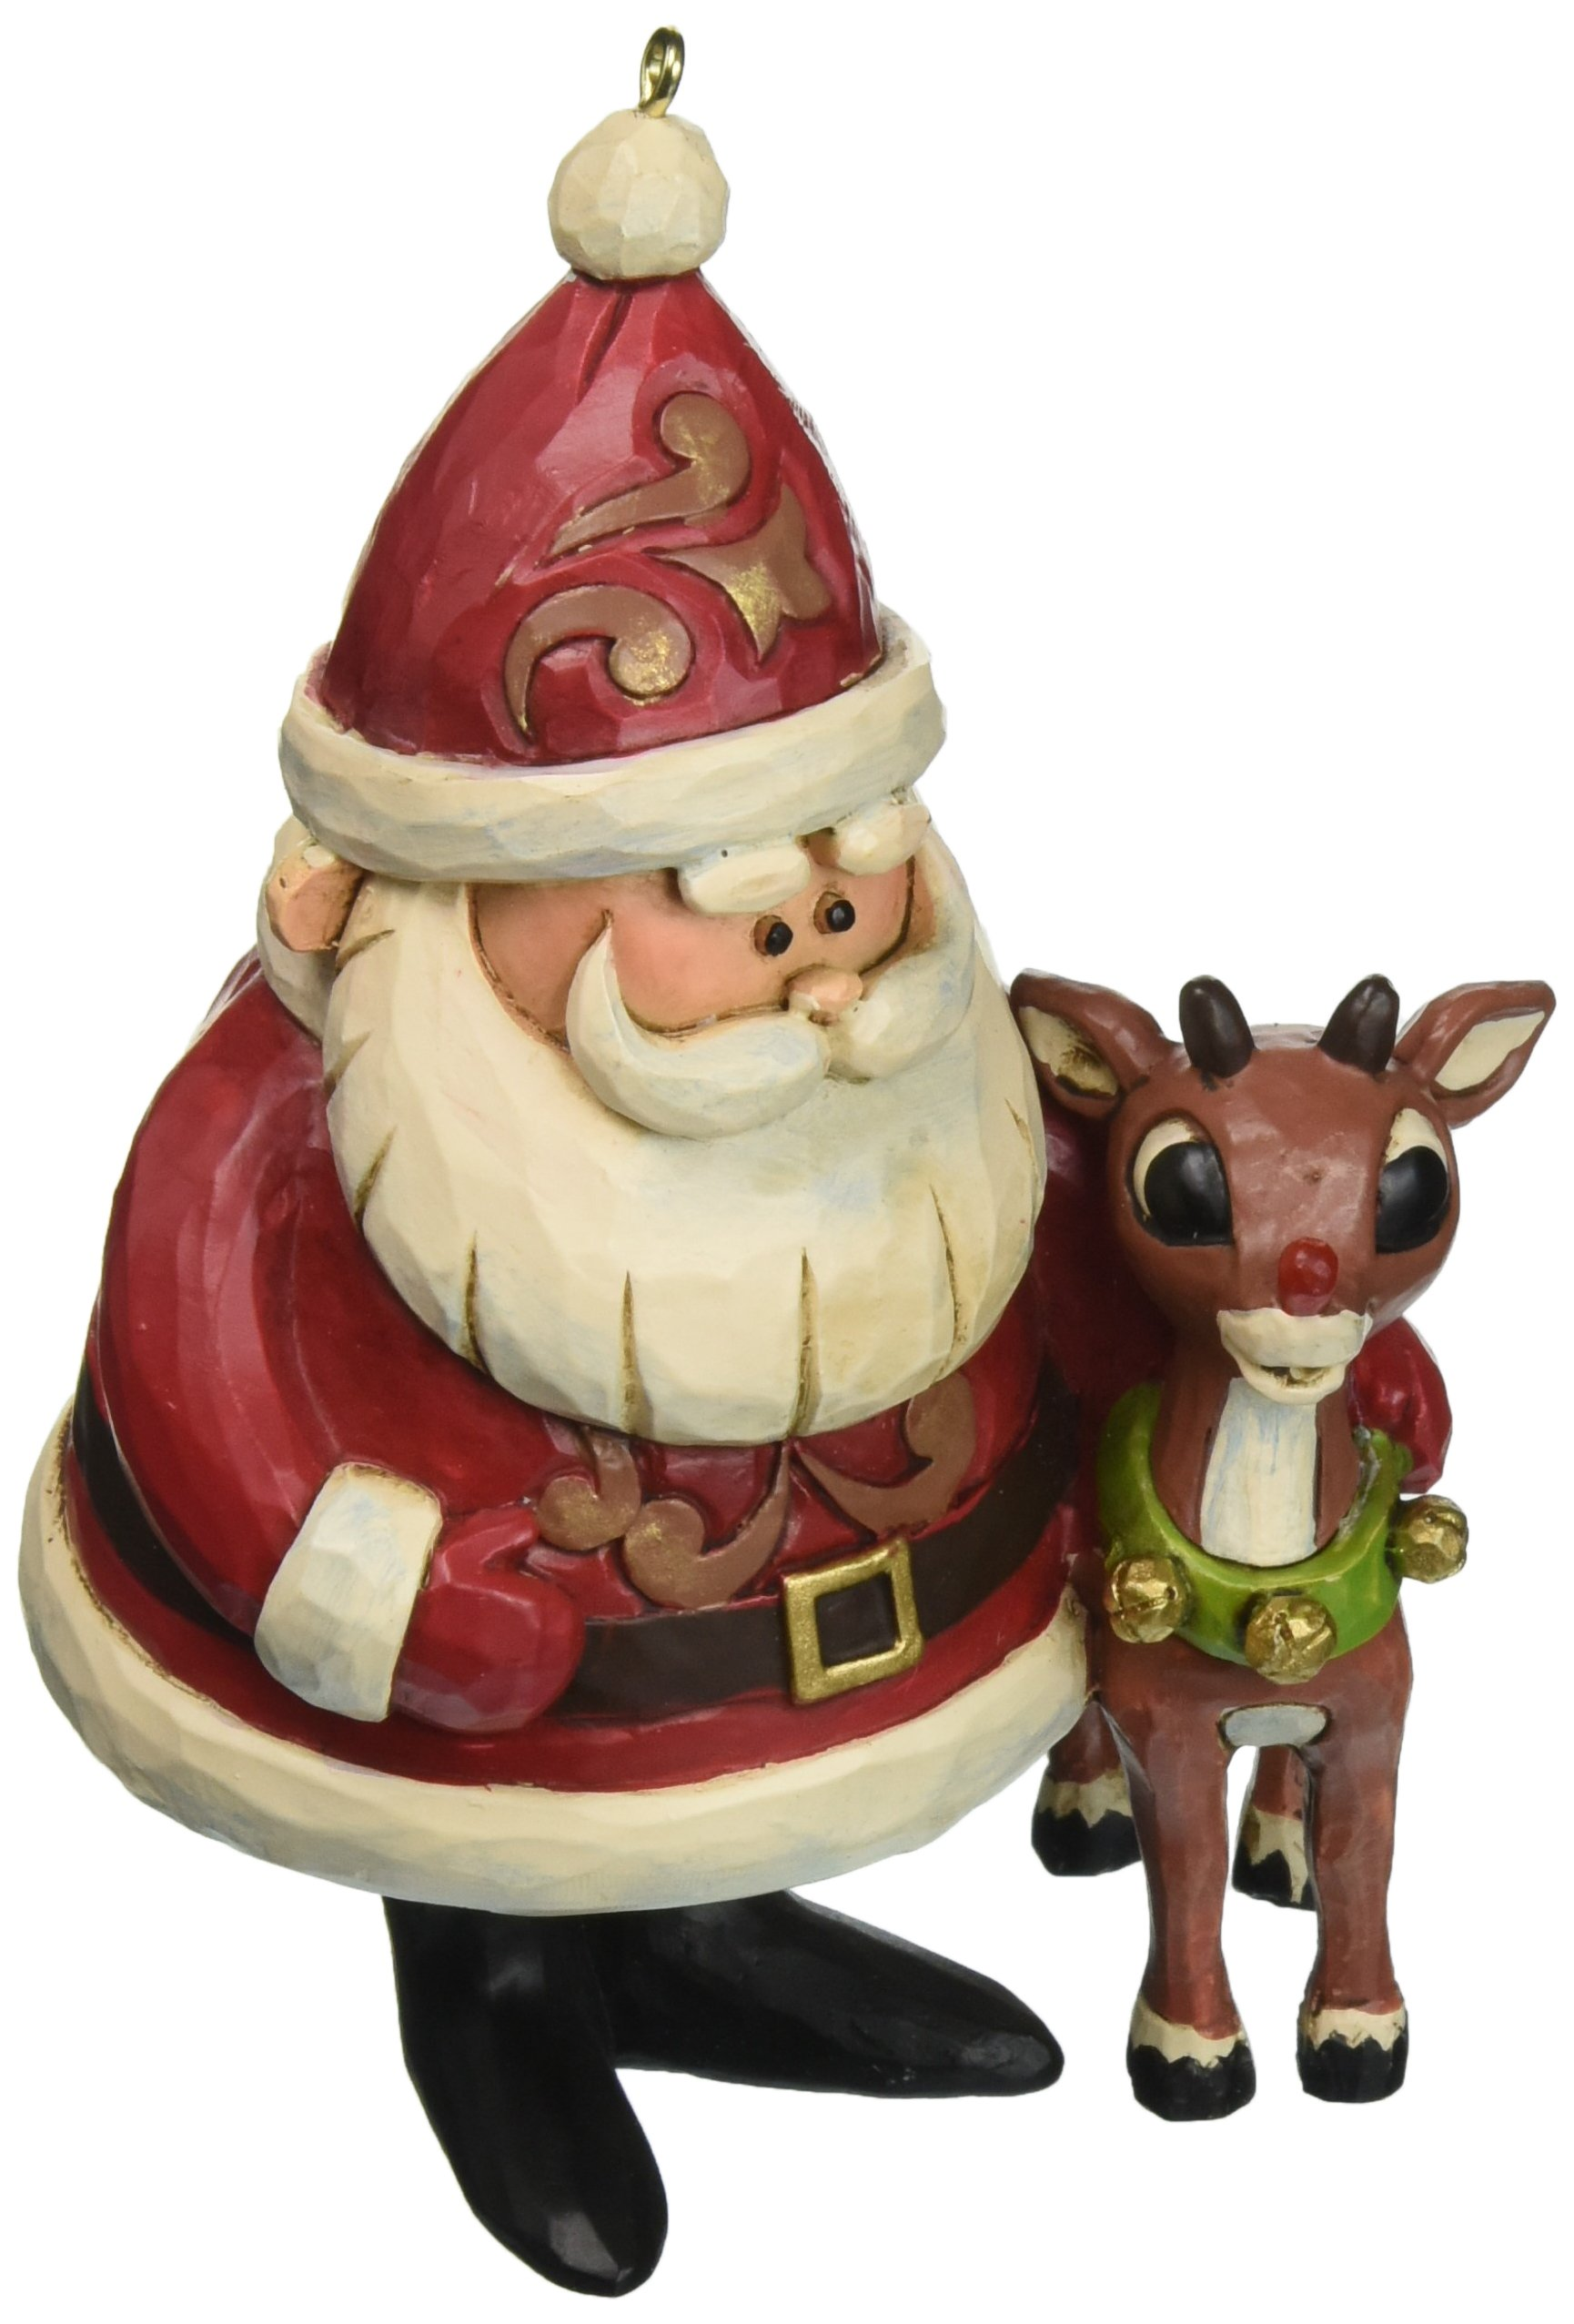 Image of Light Up Jim Shore Rudolph the Red-Nosed Reindeer Ornament